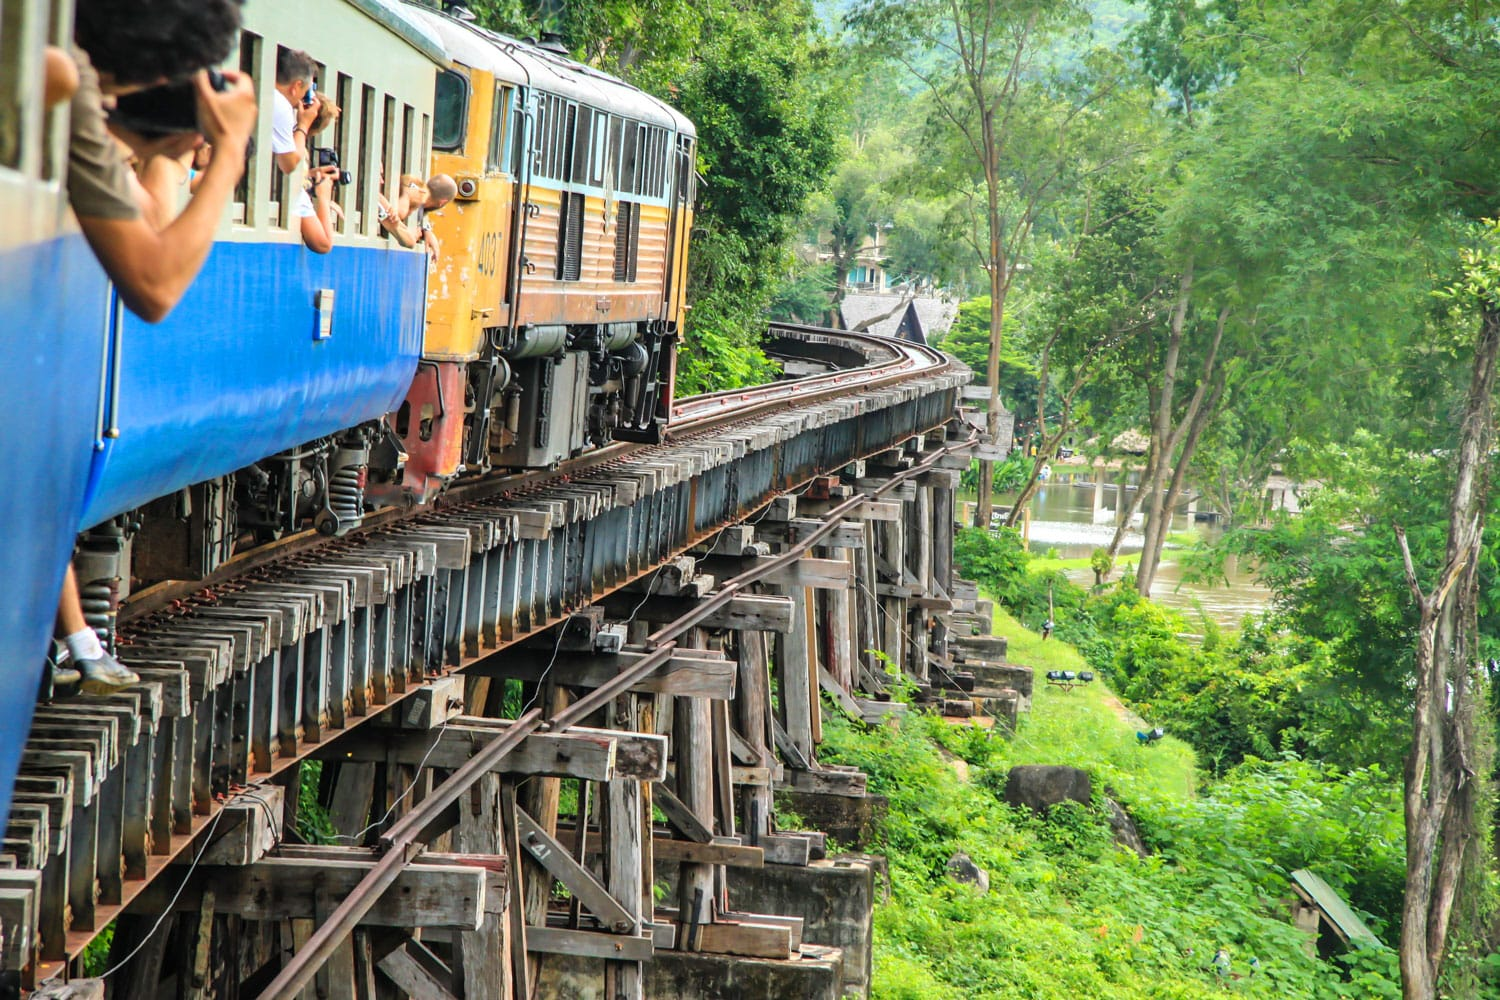 Thai Train on River Kwai Bridge of Kanchanaburi, Thailand